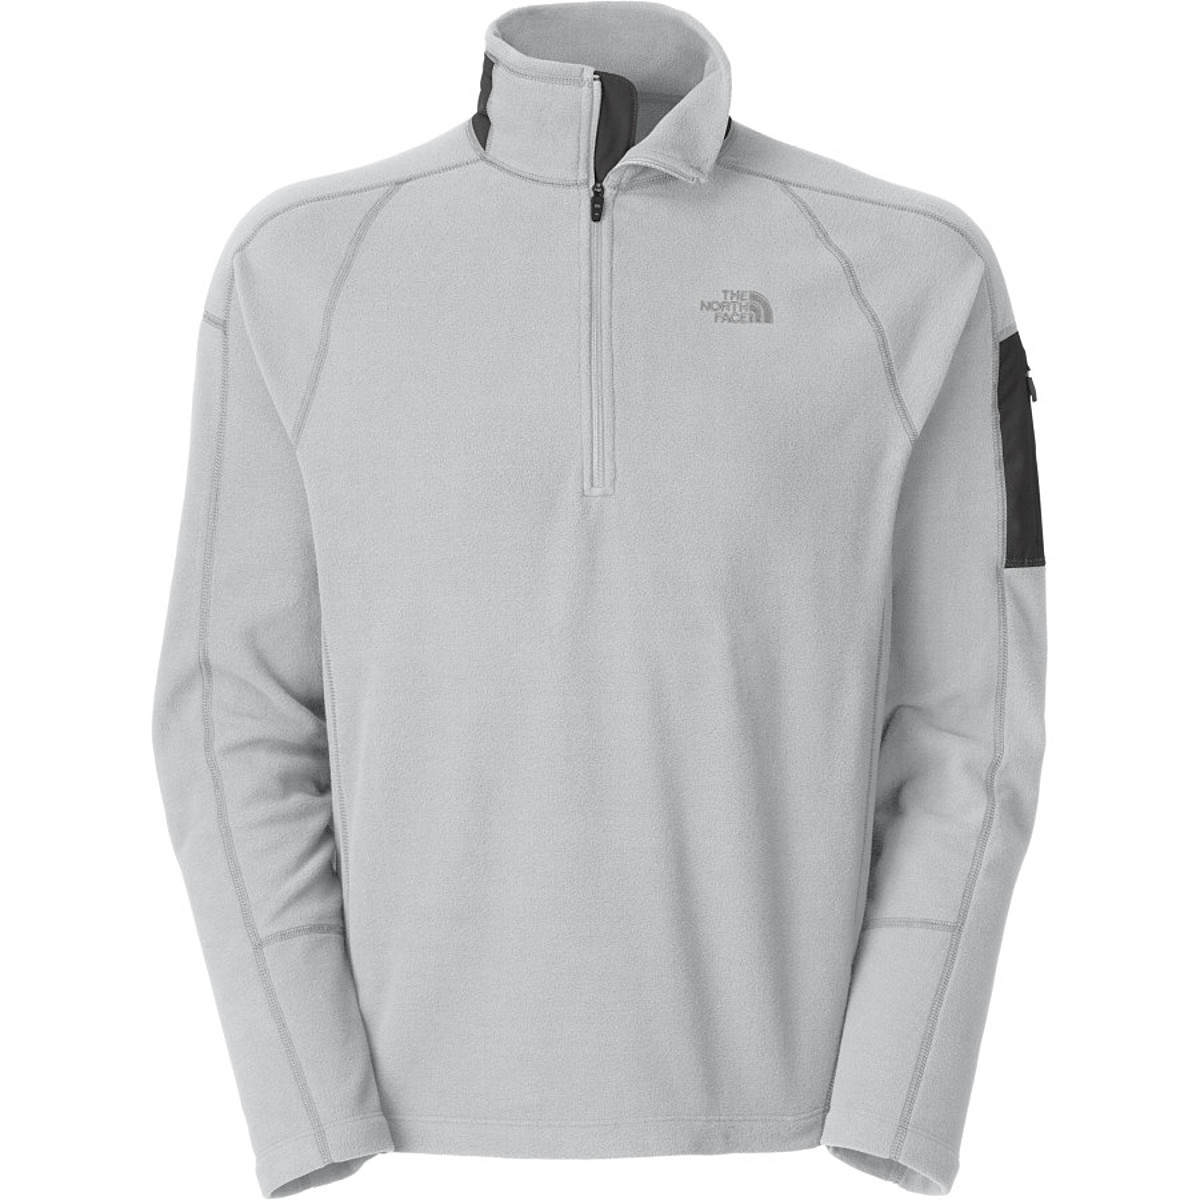 photo: The North Face RDT 100Wt 1/2 Zip fleece top